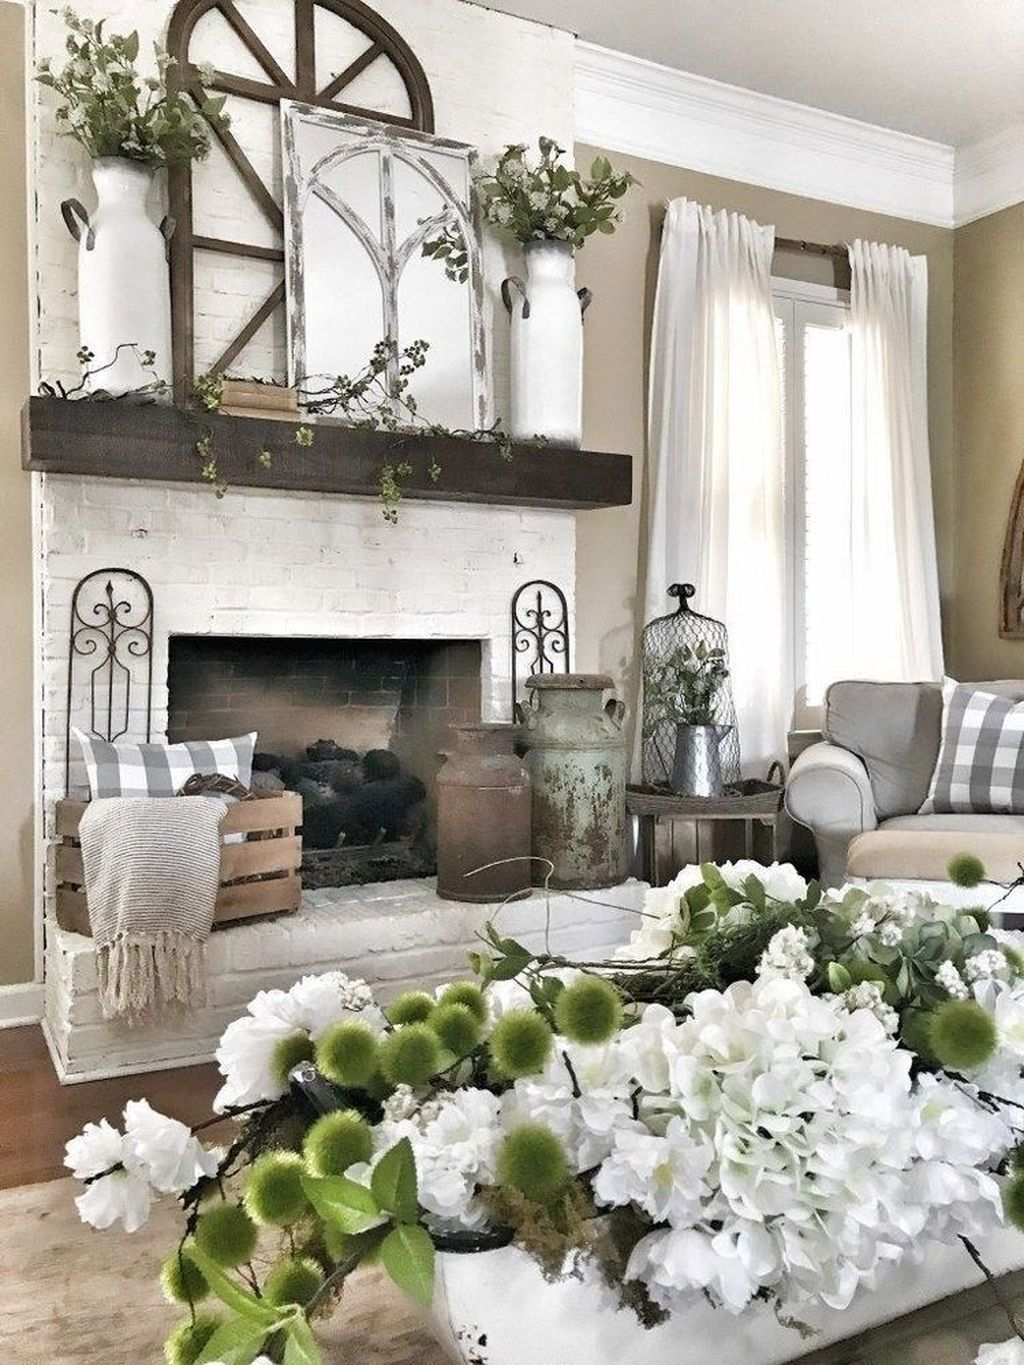 Stunning Fireplace Mantel Decor Ideas You Should Copy Now 08